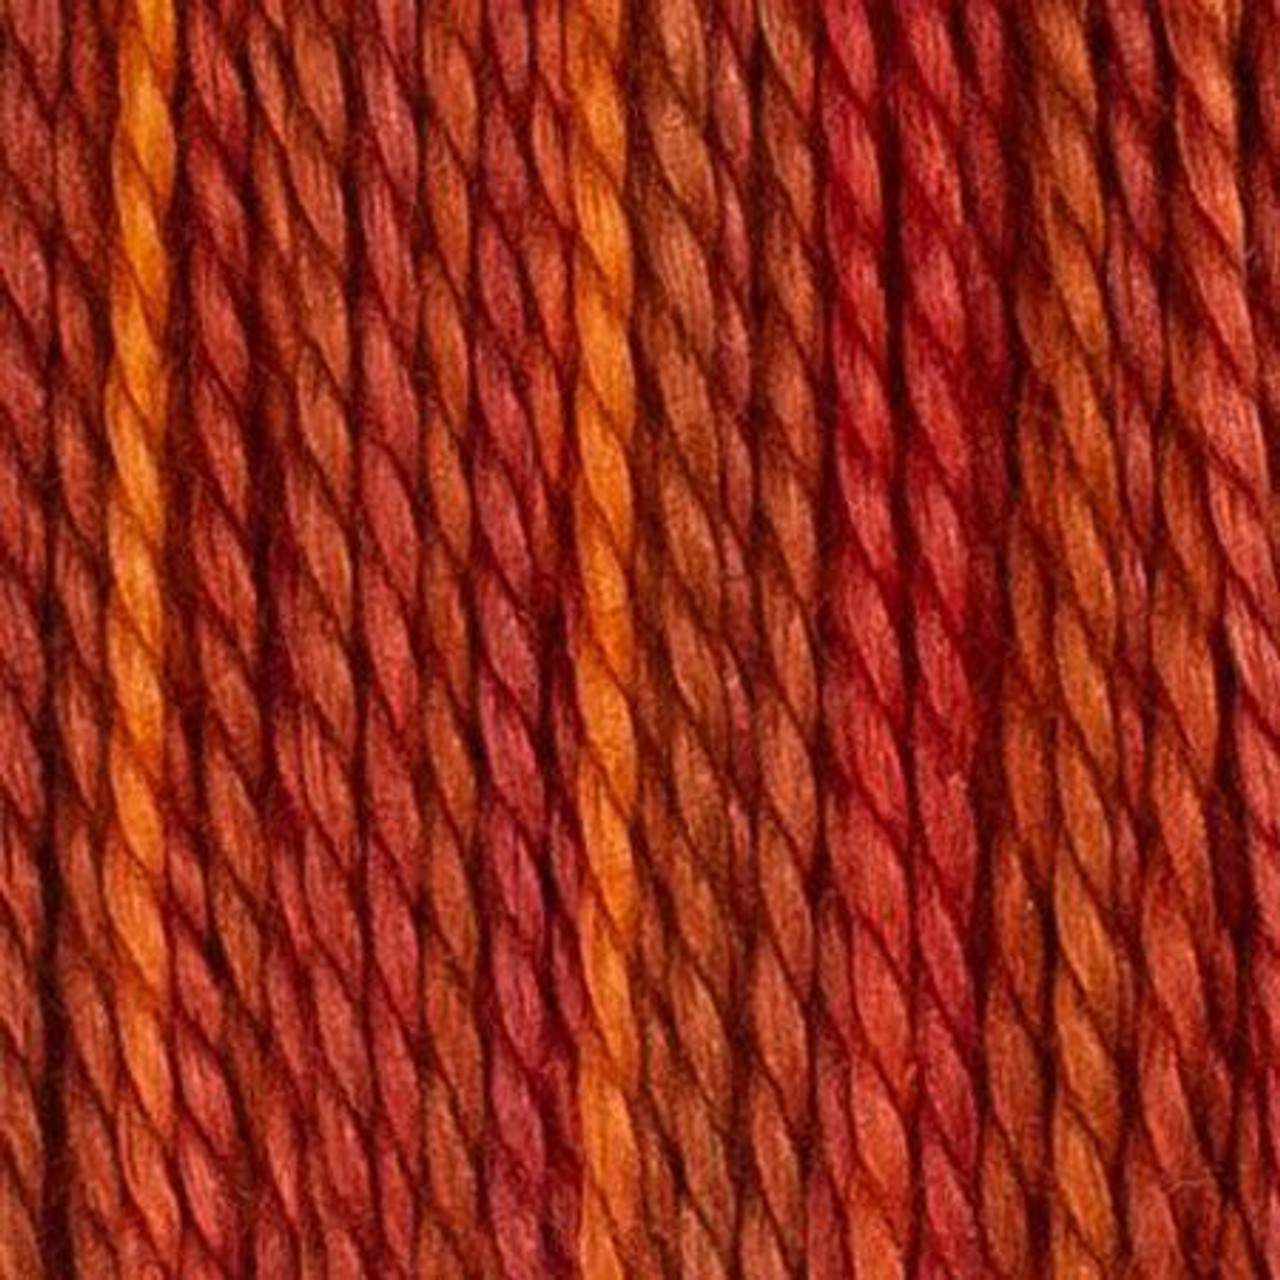 House of Embroidery : 8wt Perle Cotton - Maple (65A)